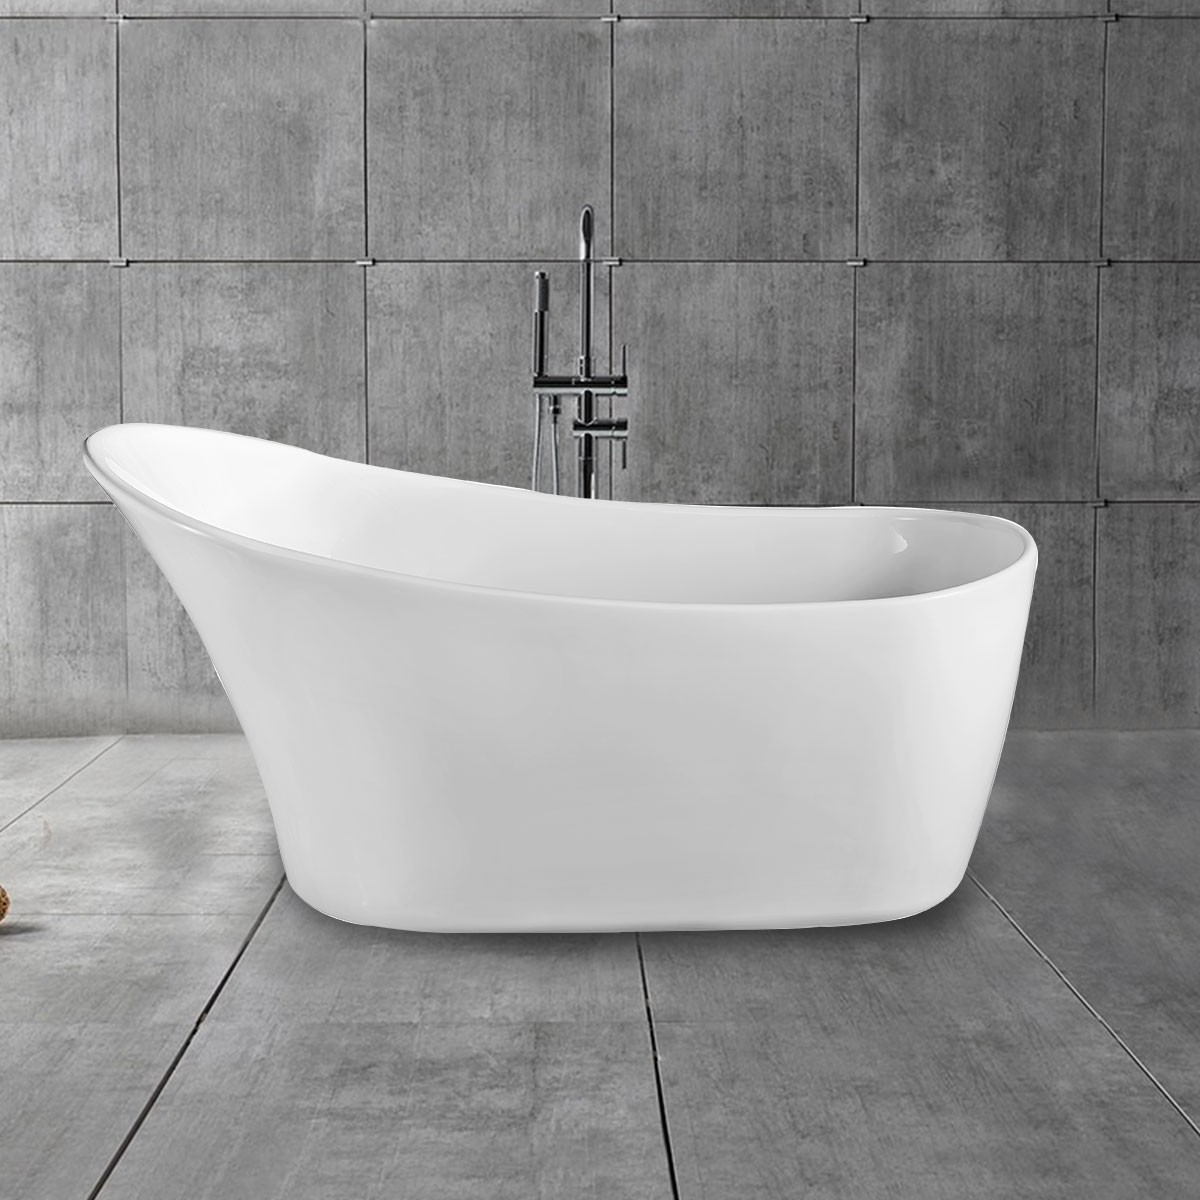 67 In Acrylic White Freestanding Bathtub (DK-MEC3149)